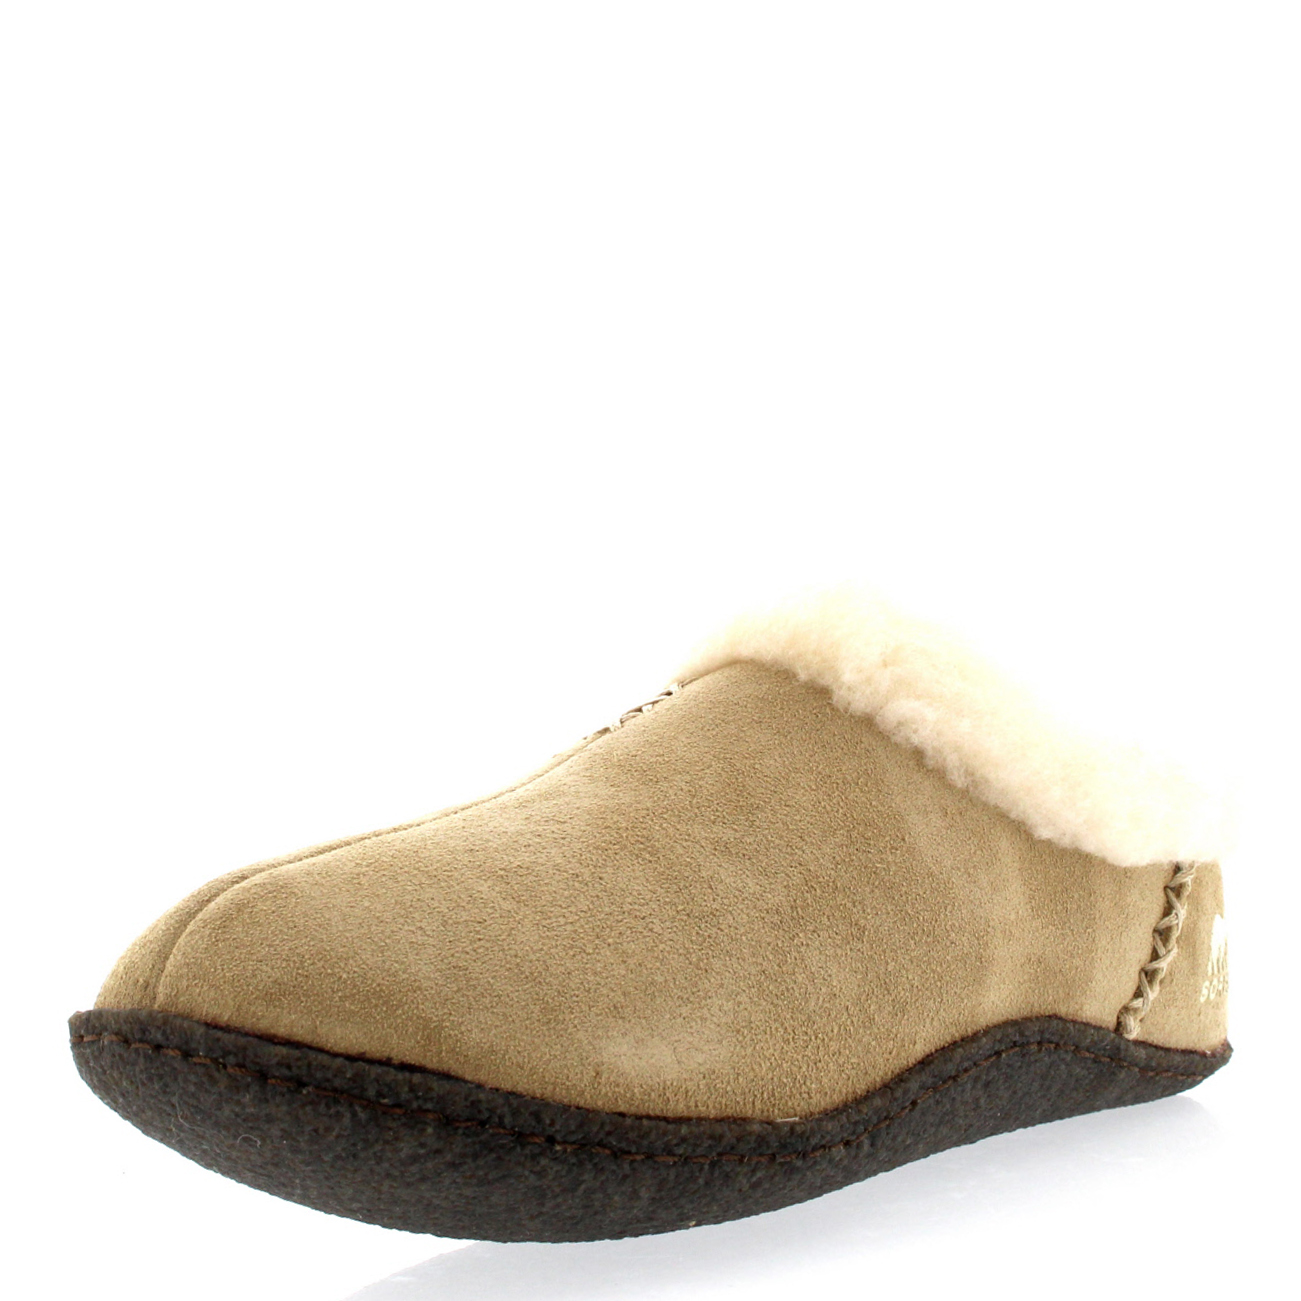 Womens slippers Women's slippers are a treat to come home to. Classic sheepskin moccasin slippers or snug brushed felt Scandinavian styles will become an essential part of your relaxation routine.